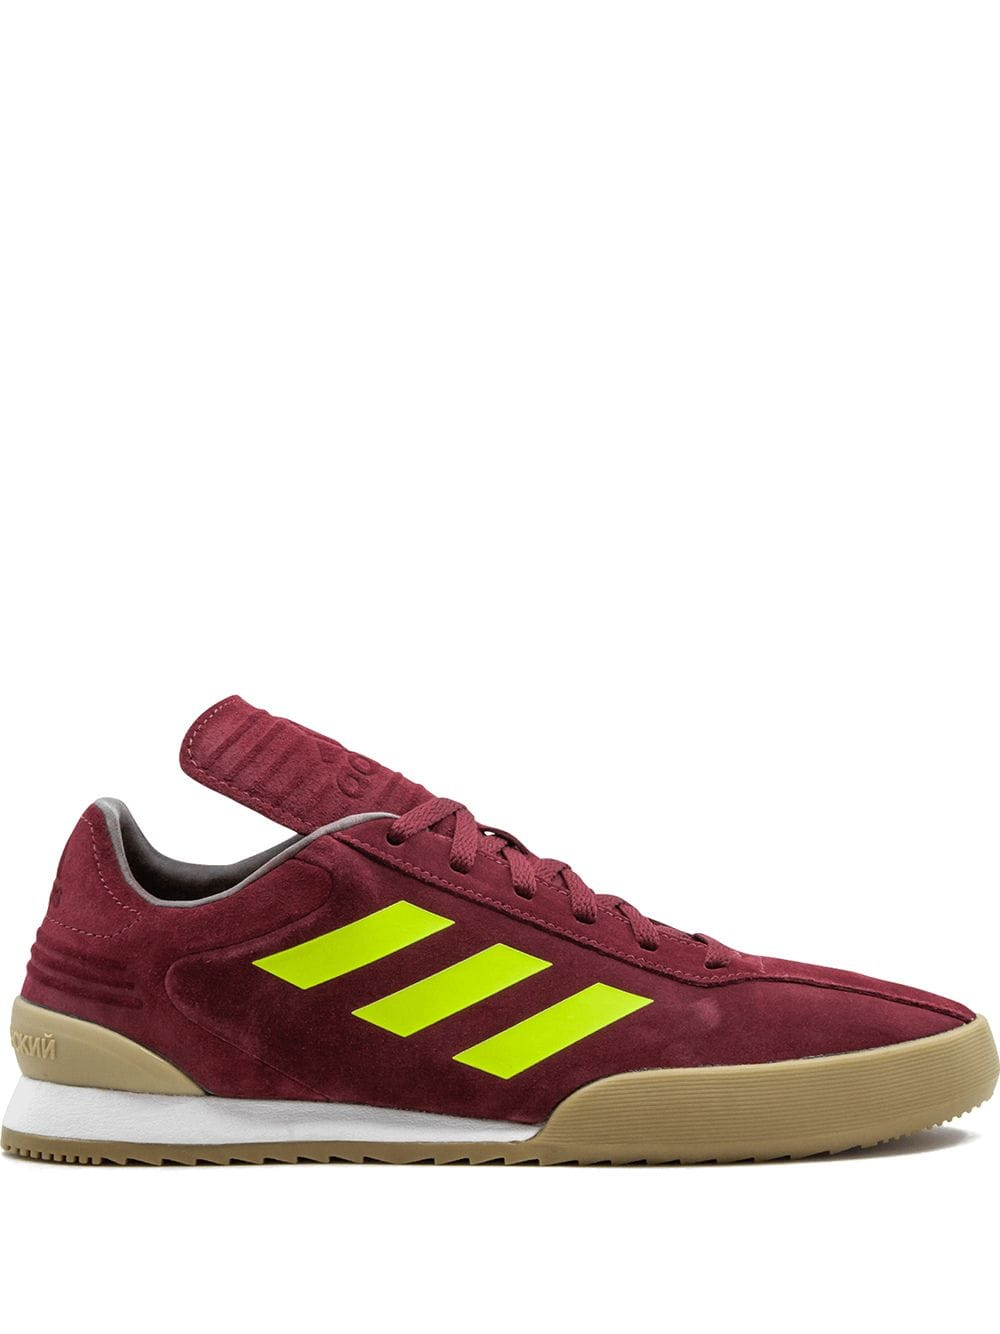 free shipping 8f2d3 8d334 Adidas GR Copa Super sneakers - Red | Products in 2019 ...